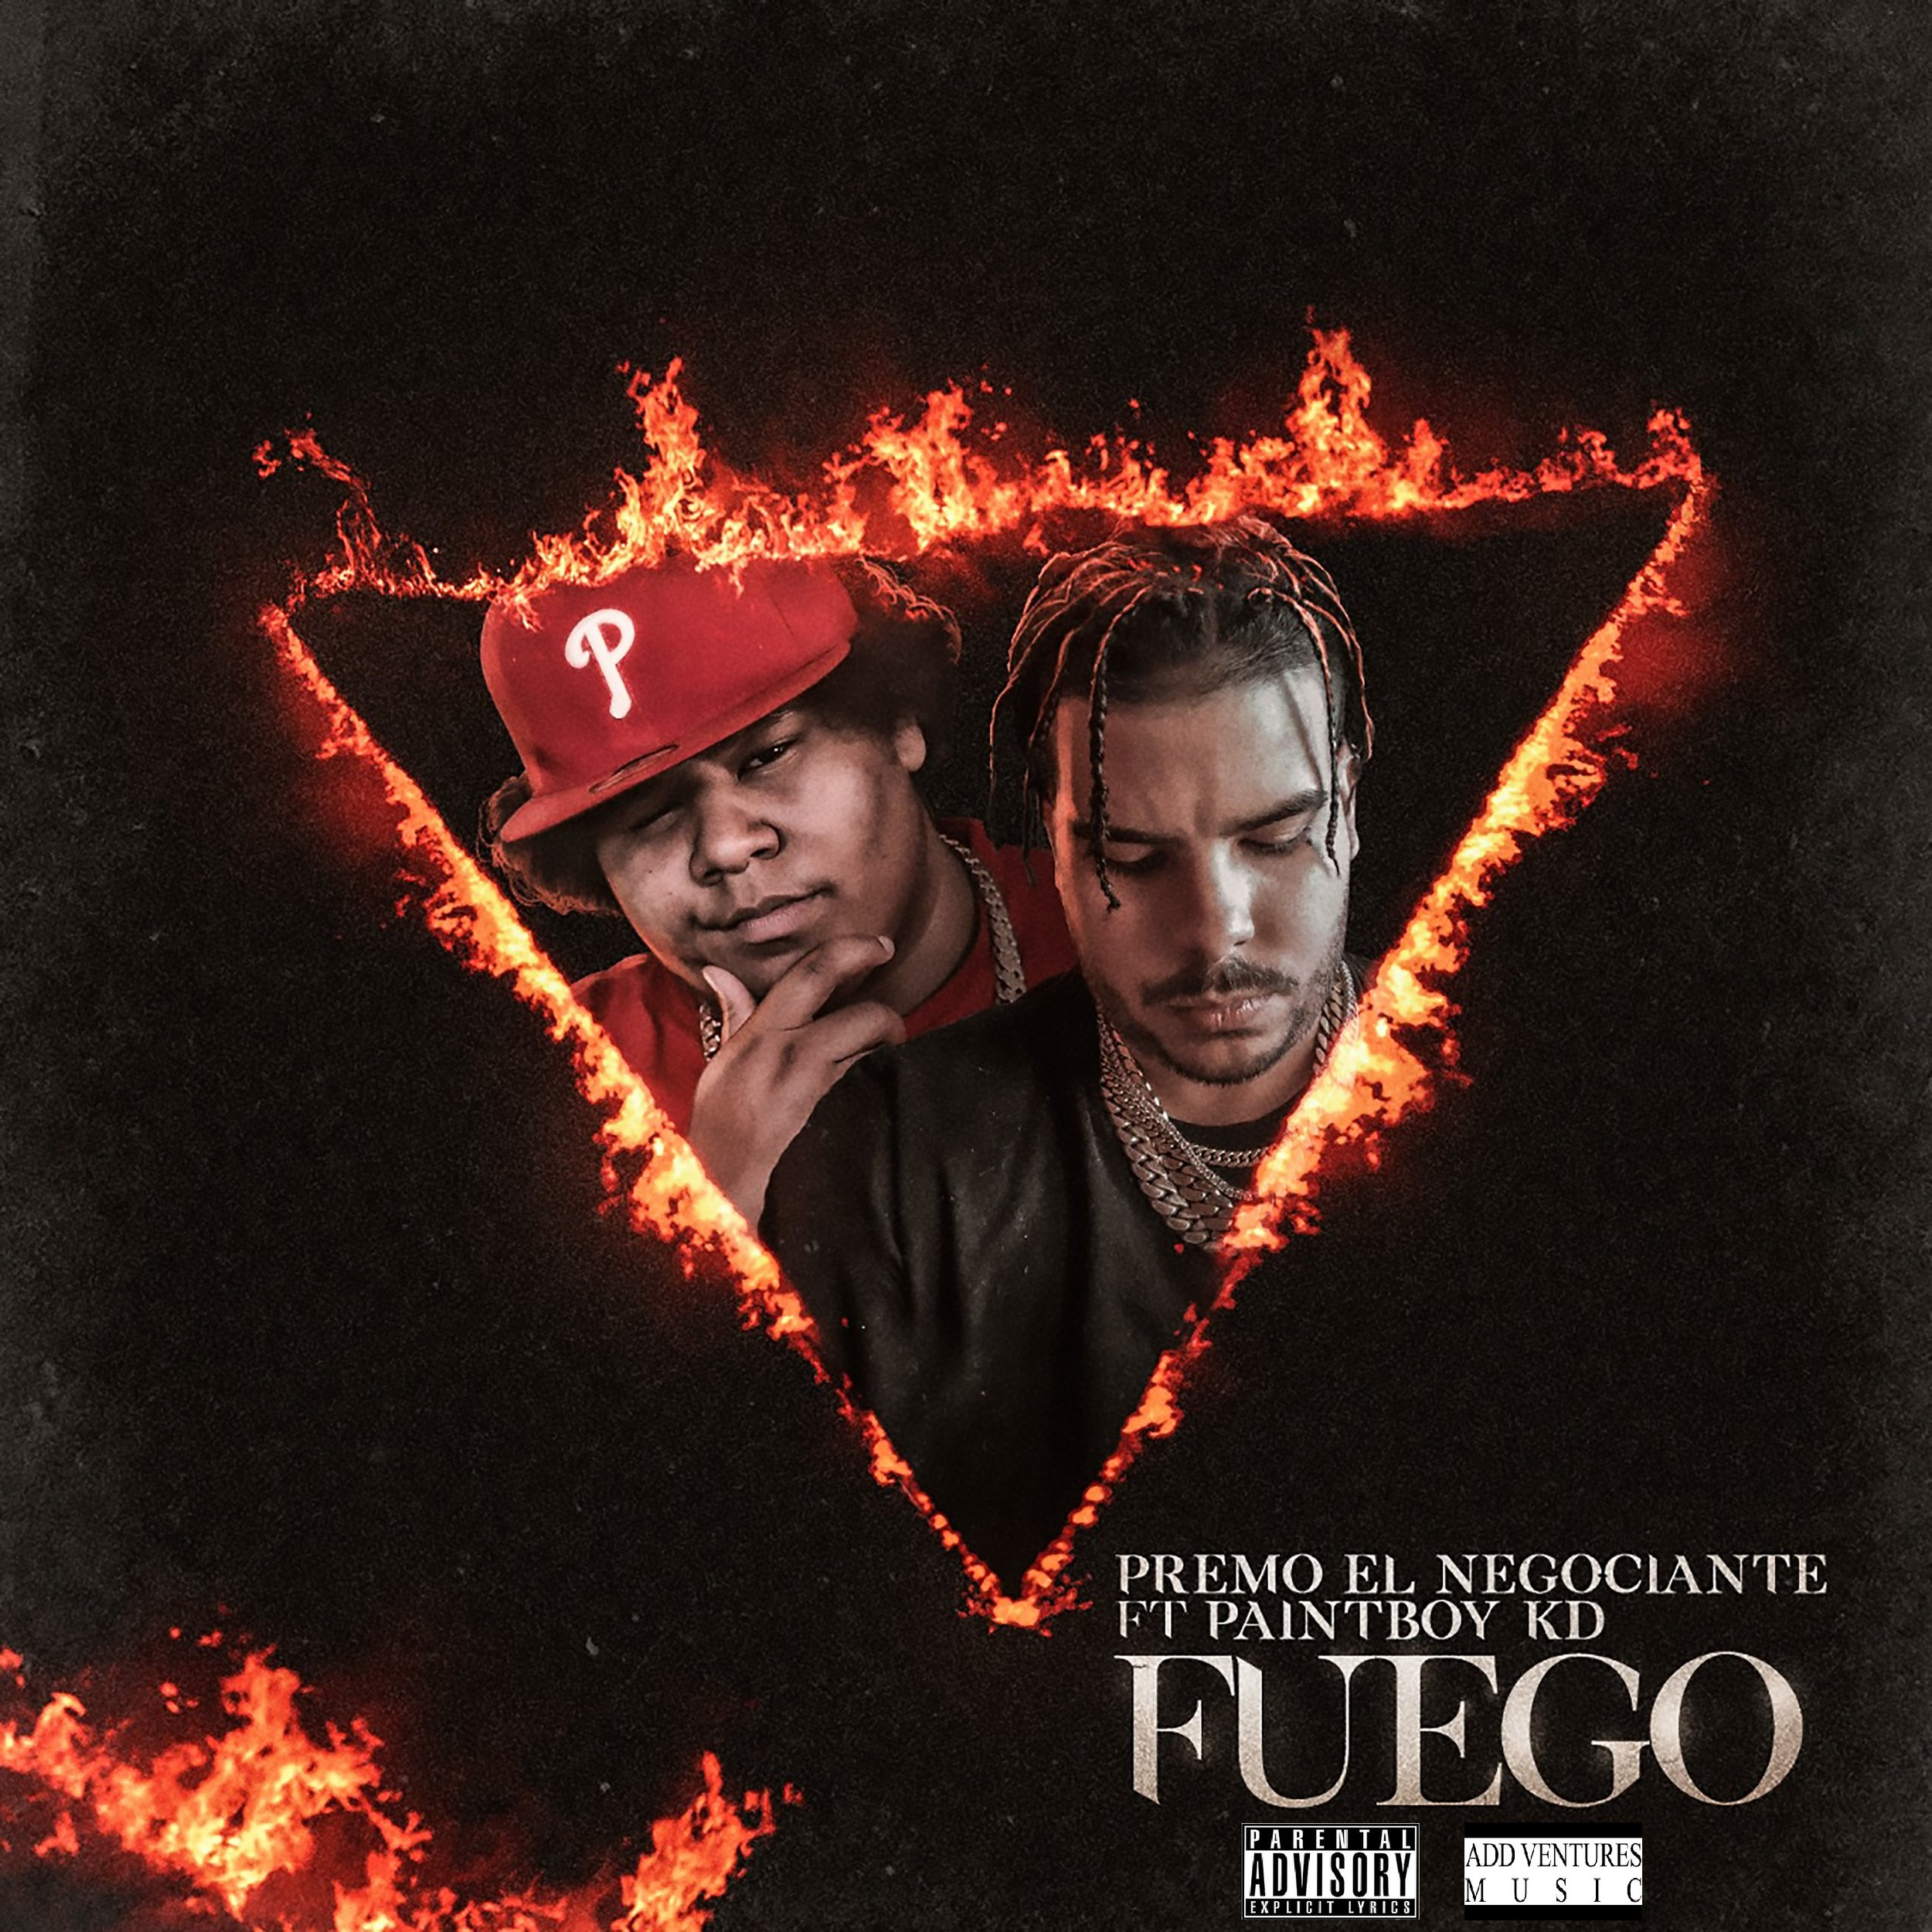 Premo - Fuego - Single Cover Explicit.jpg